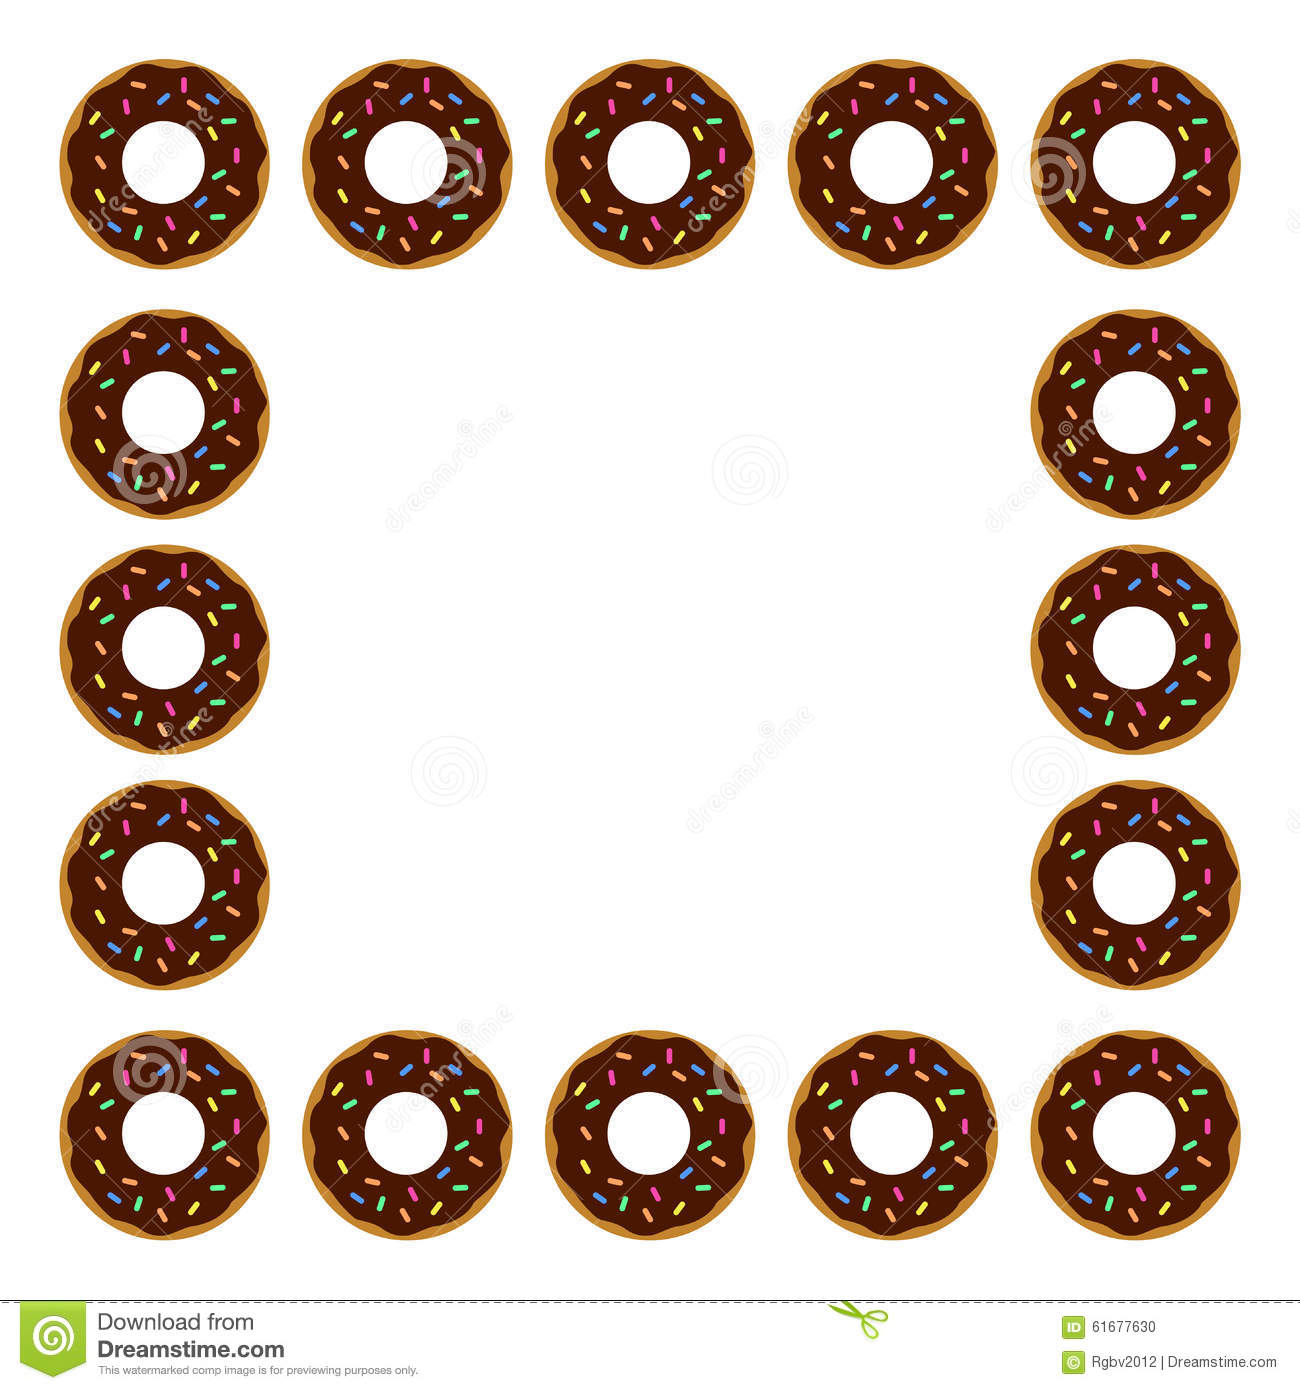 Donut Frame Stock Photo - Image: 61677630